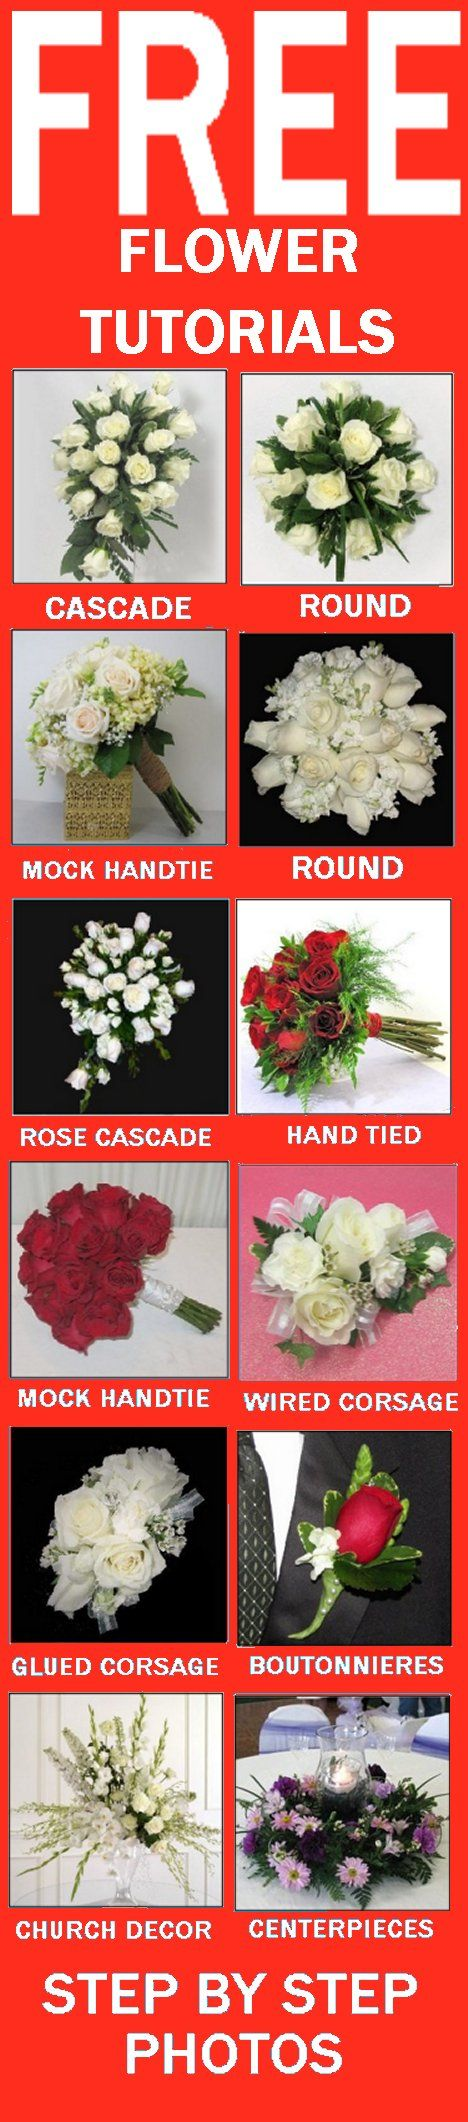 Wedding Flower Prices - Can You Save by Doing it Yourself?  Learn how to make bridal bouquets, wedding corsages, groom boutonnieres, church decorations and reception table centerpieces.  Buy wholesale flowers and discount florist supplies